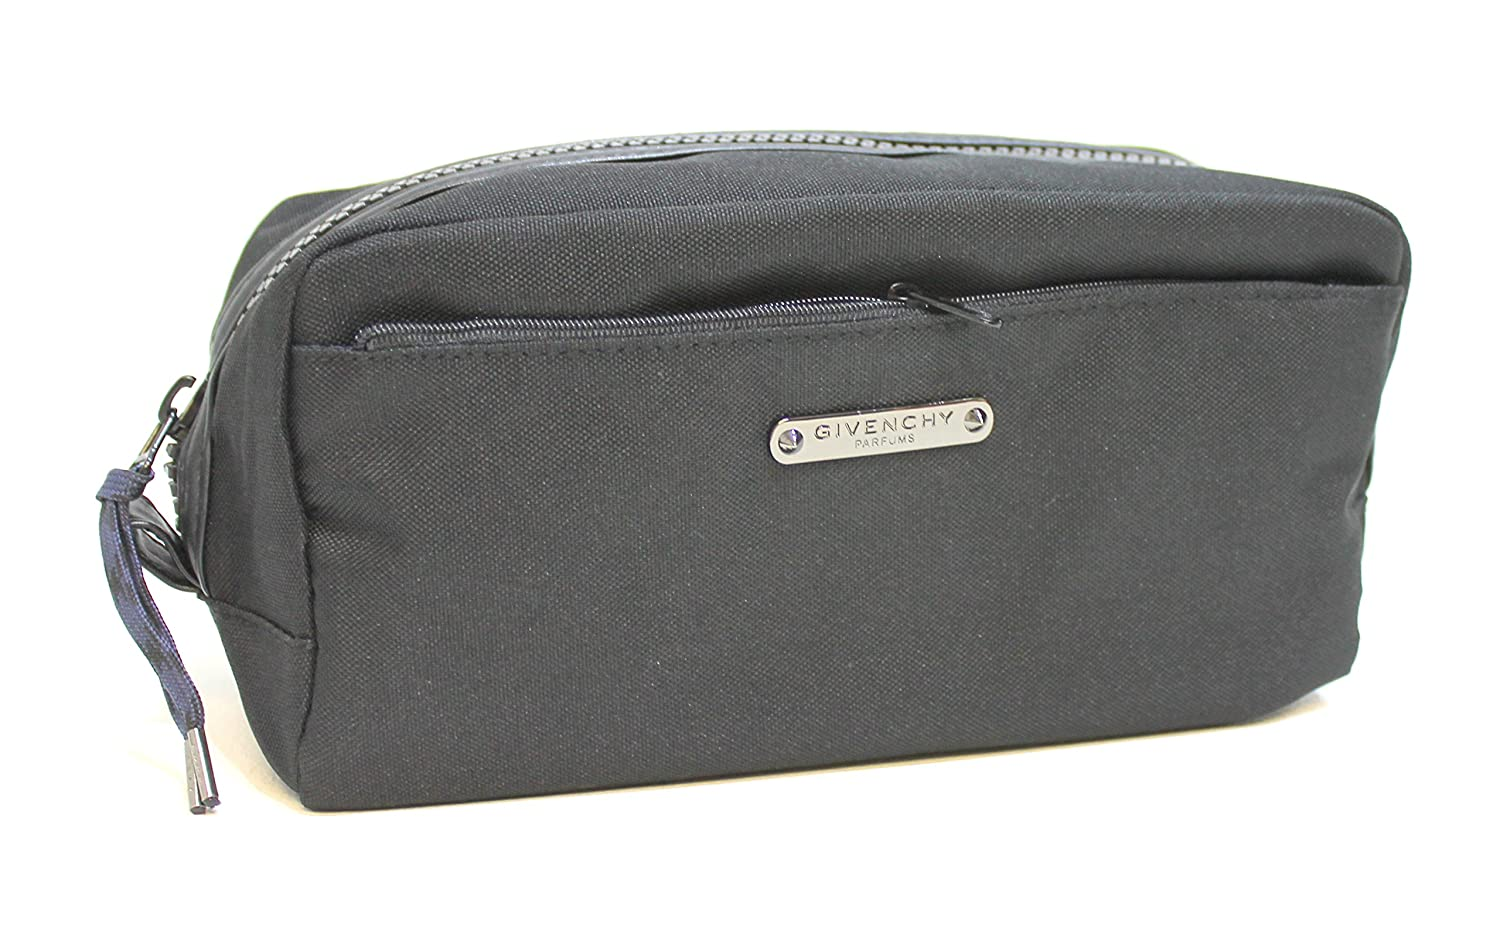 55c316361b GIVENCHY PARFUMS MENS BLACK BEAUTY CASE   WASH   TOILETRY BAG FOR TRAVEL   NEW  Amazon.co.uk  Luggage